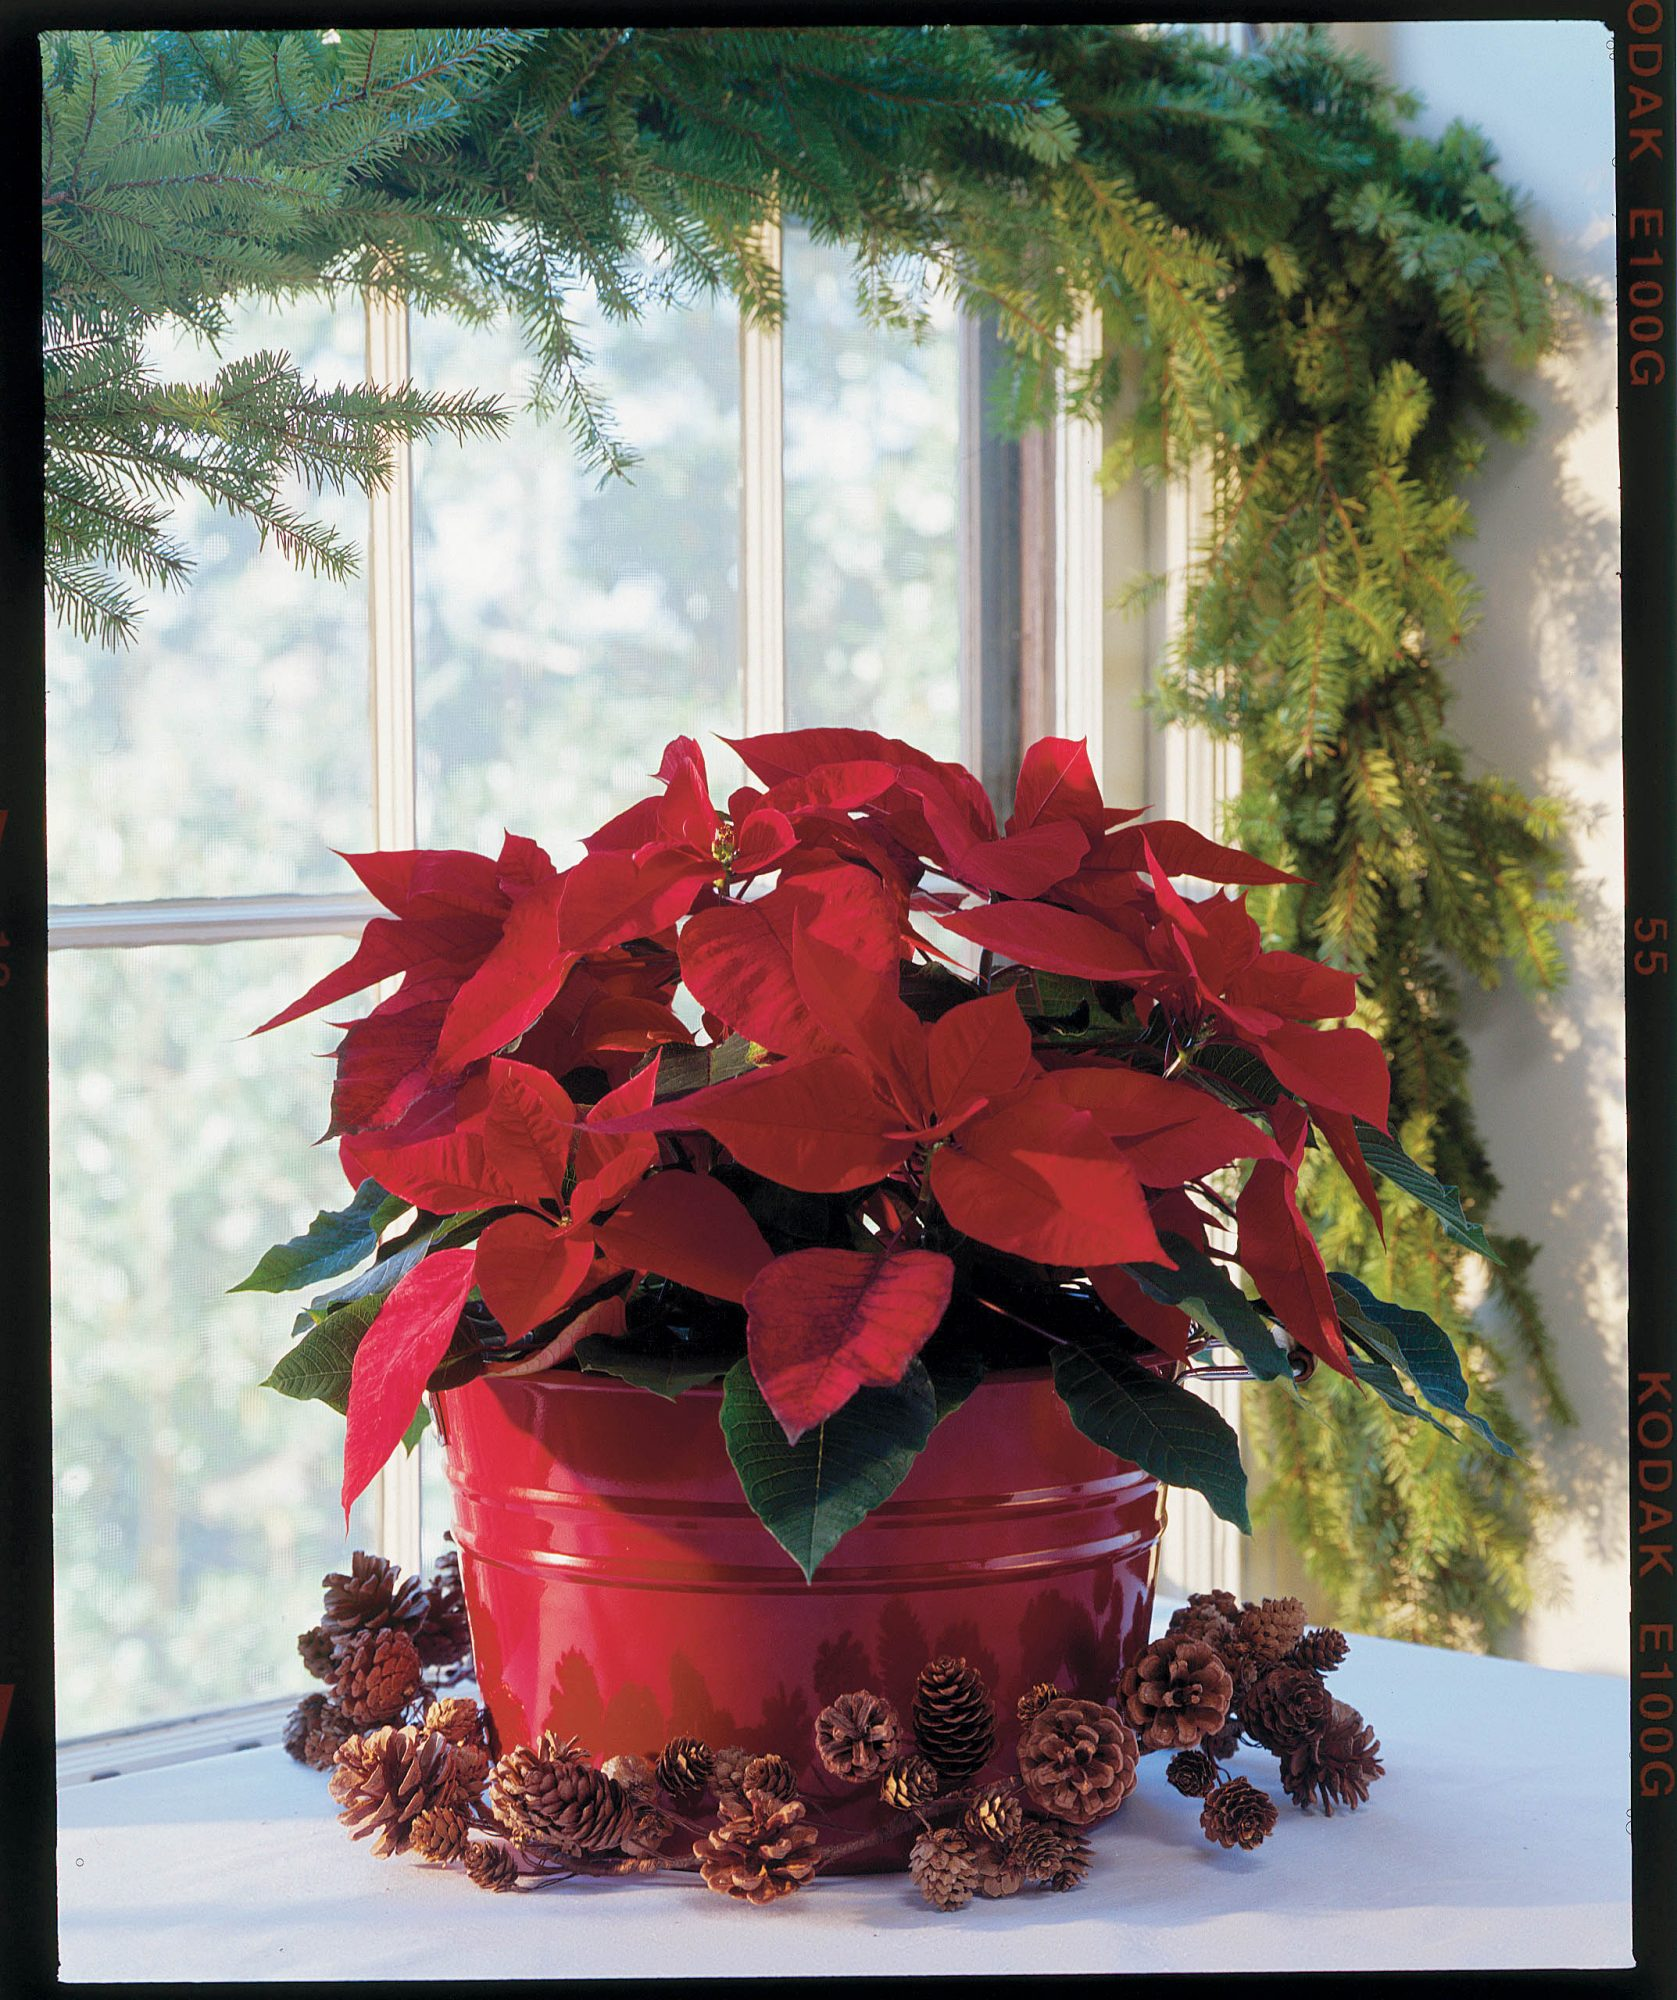 Poinsettia, poinsettias